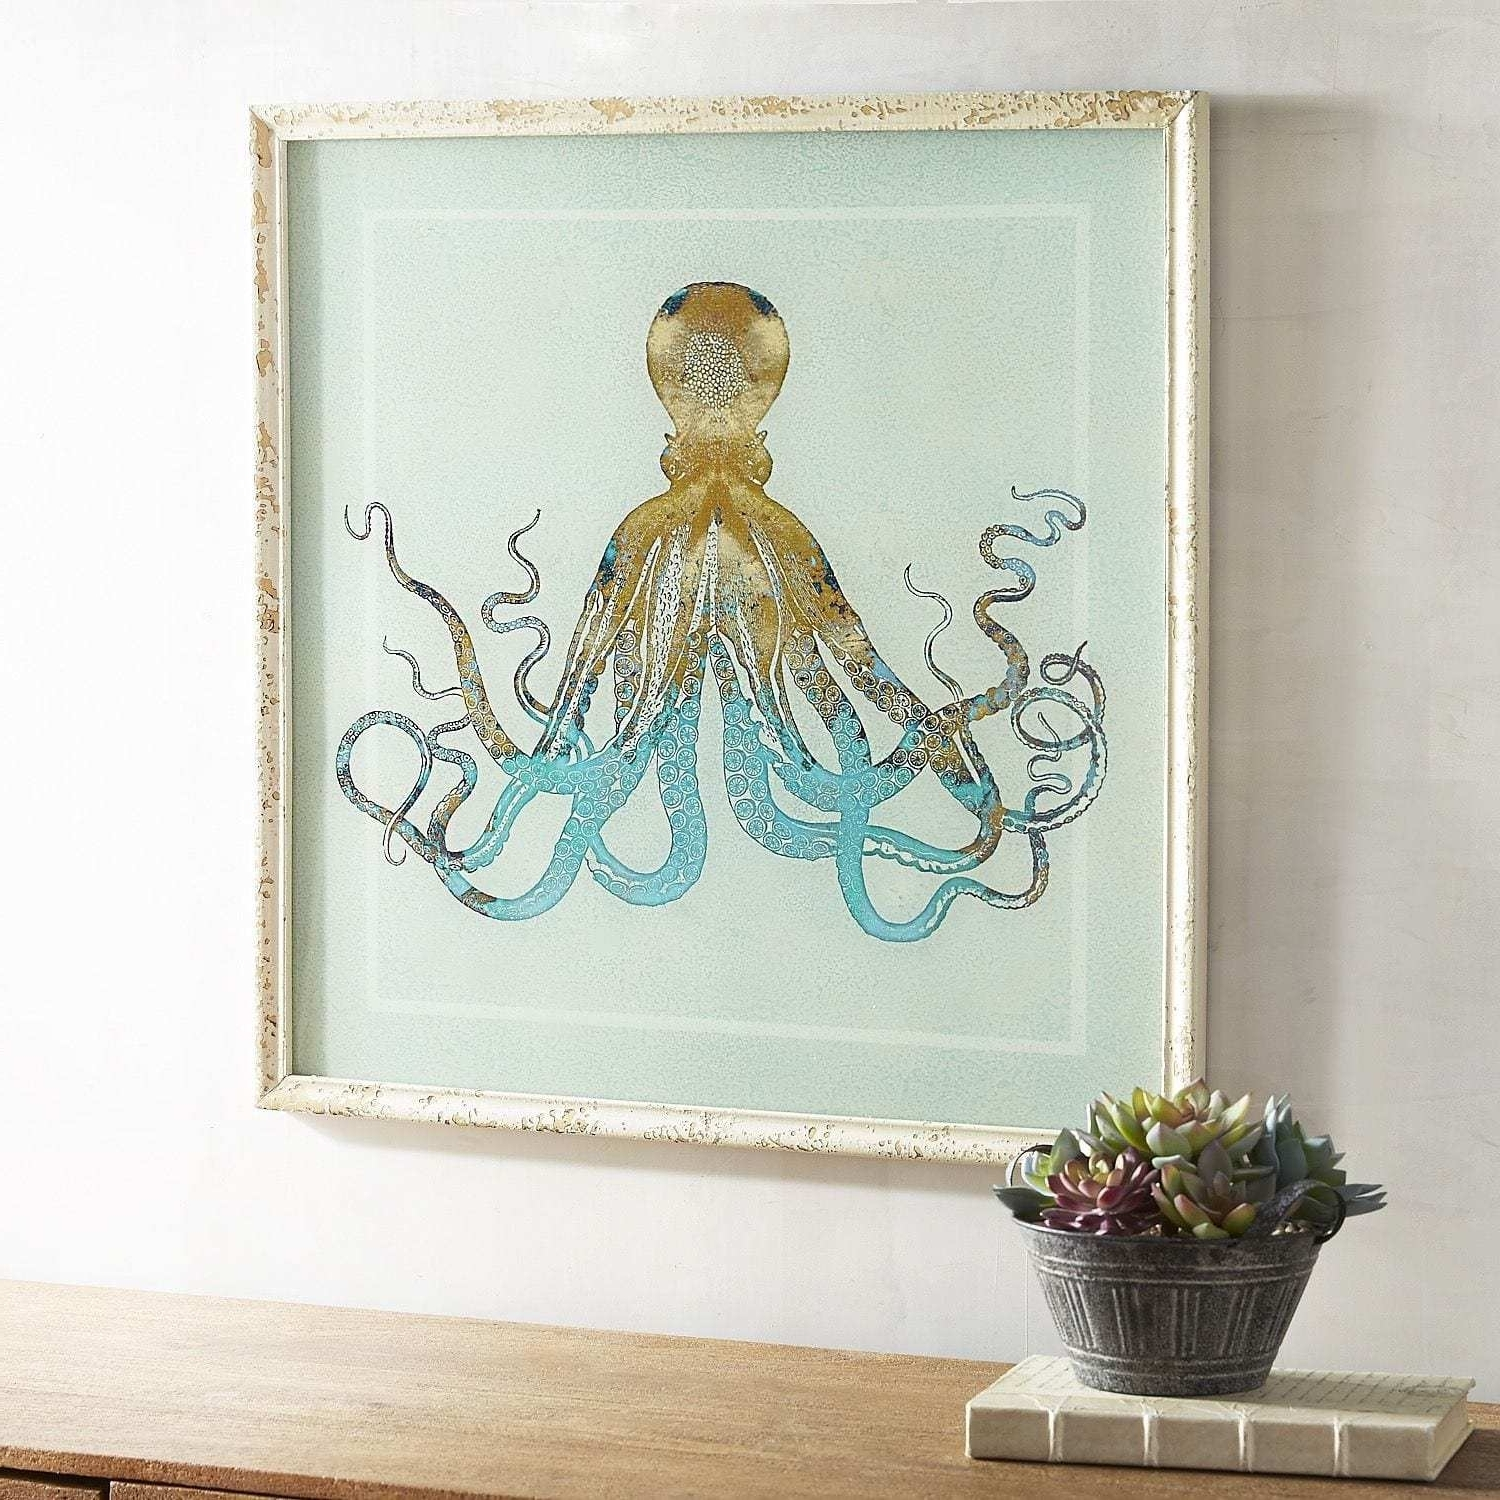 Well Known Marvelous Octopus Wall Art Pier Imports Image Of One Decor Concept Regarding Octopus Wall Art (View 14 of 15)